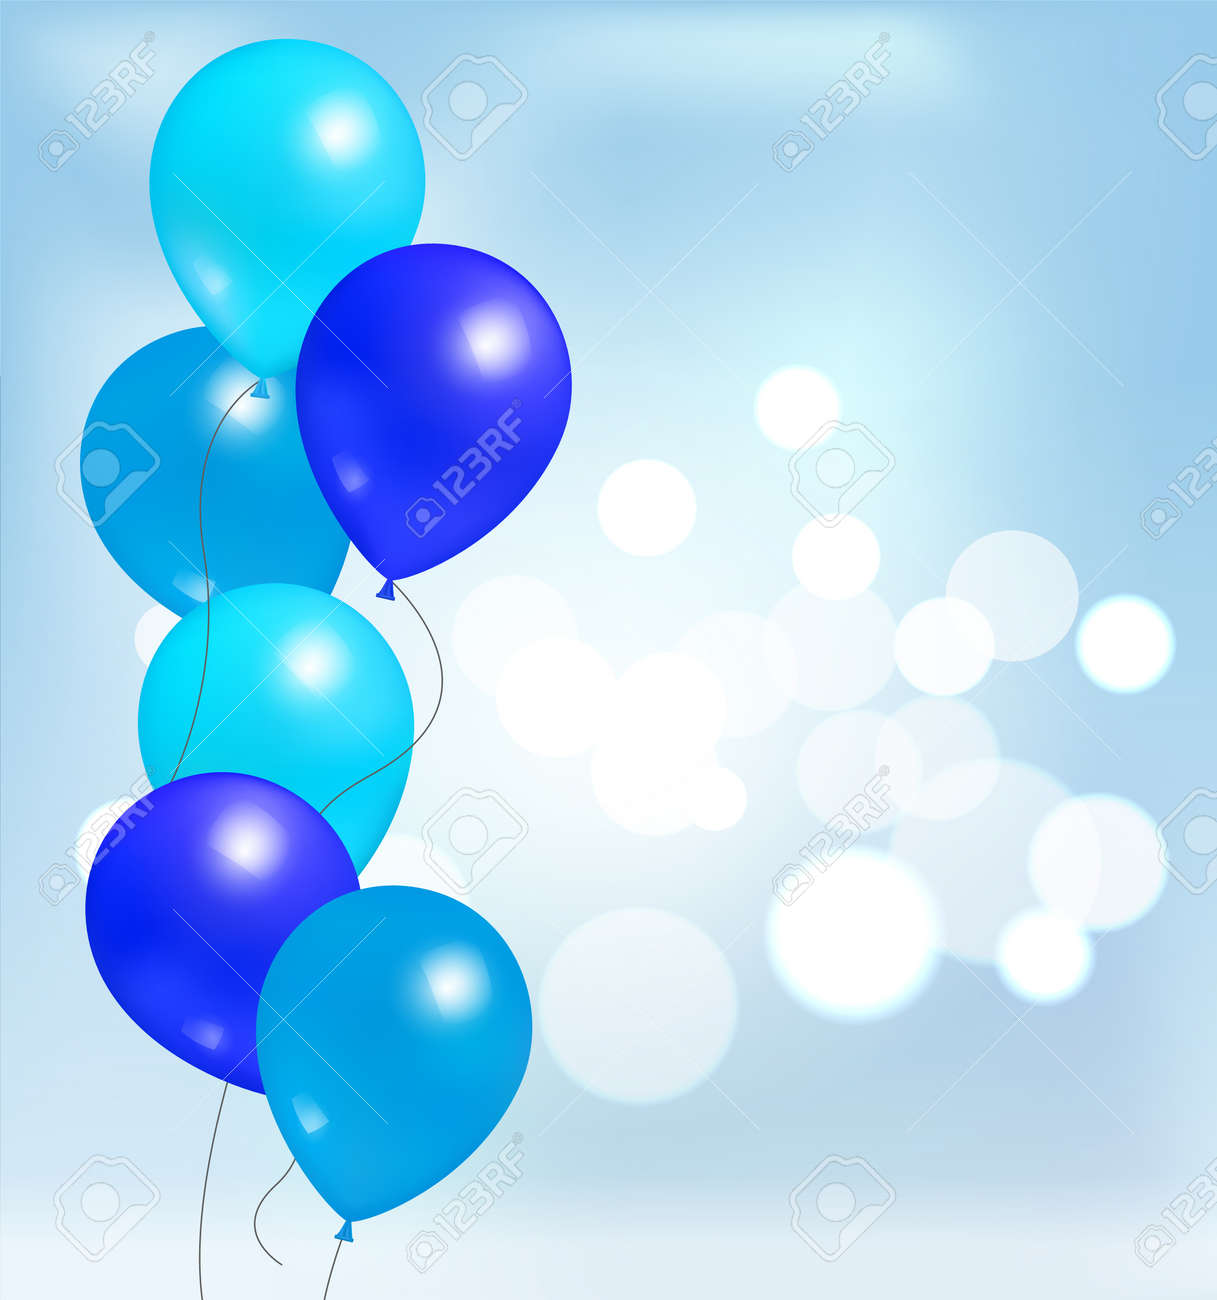 Glossy Shiny Balloons For Party Decorations Birthdays And Anniversaries Blue Rubber Balloon Inflatable Helium